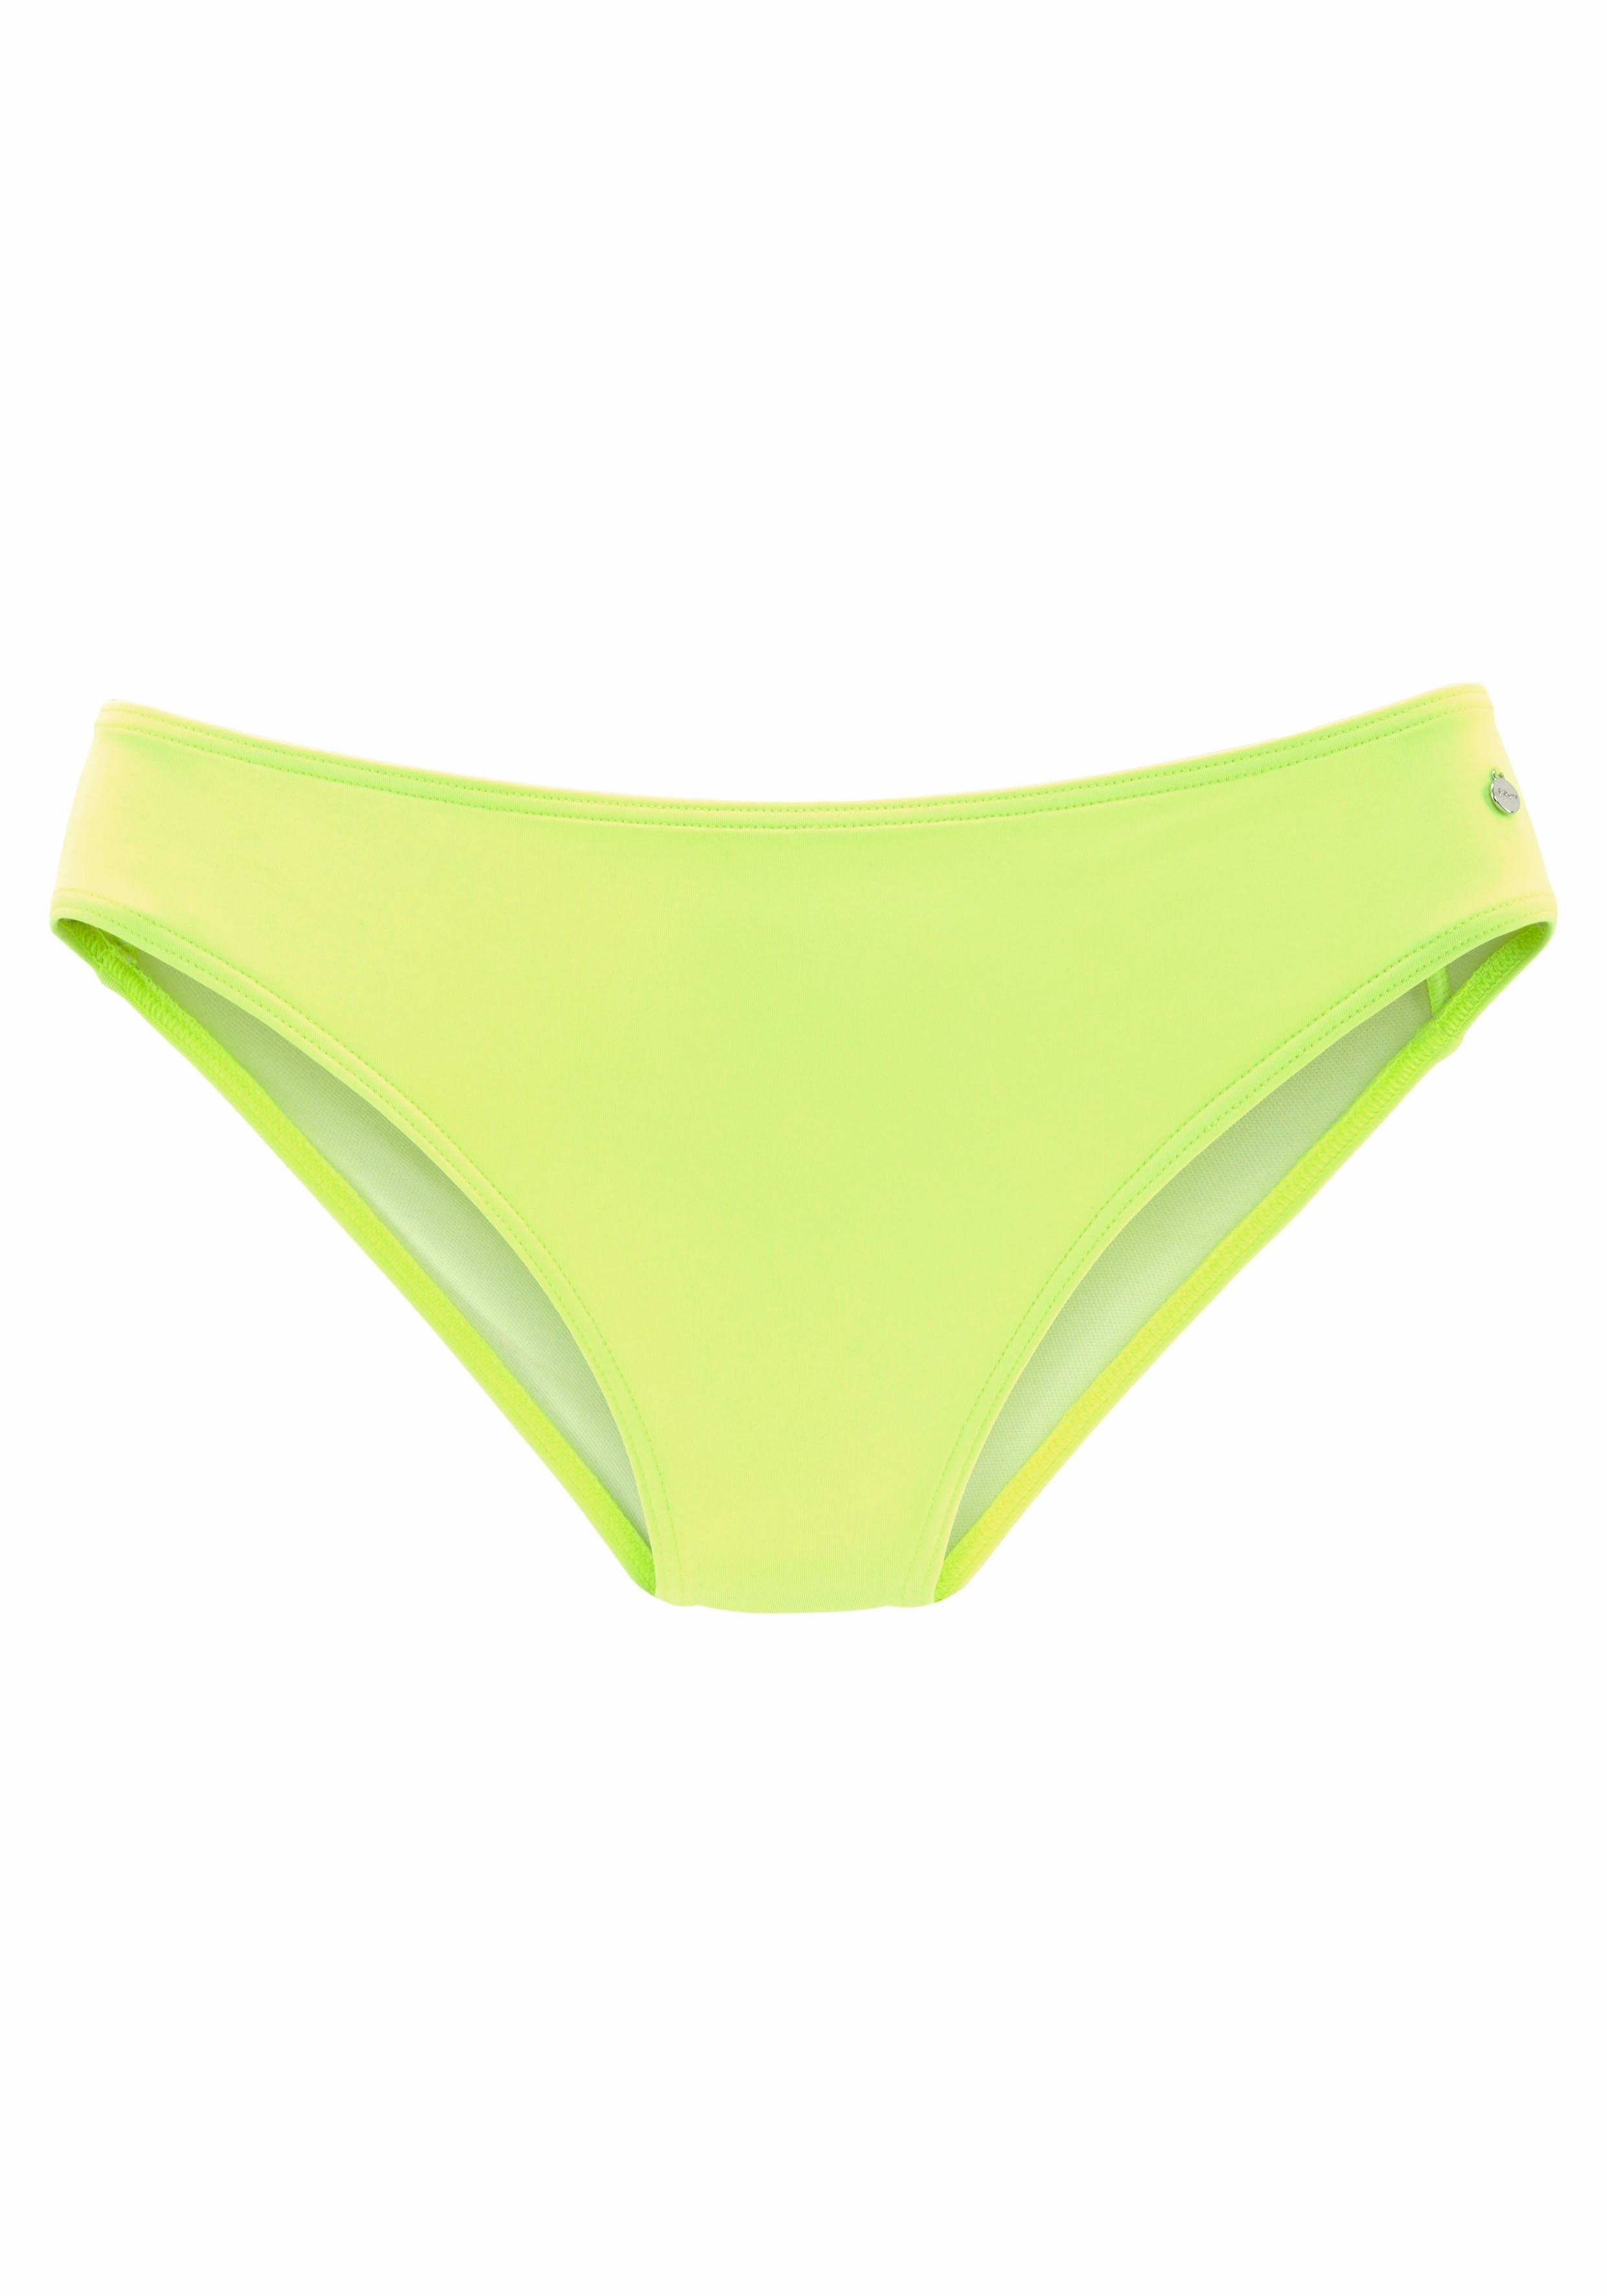 s.Oliver RED LABEL Beachwear bikinibroekje »Spain« - verschillende betaalmethodes